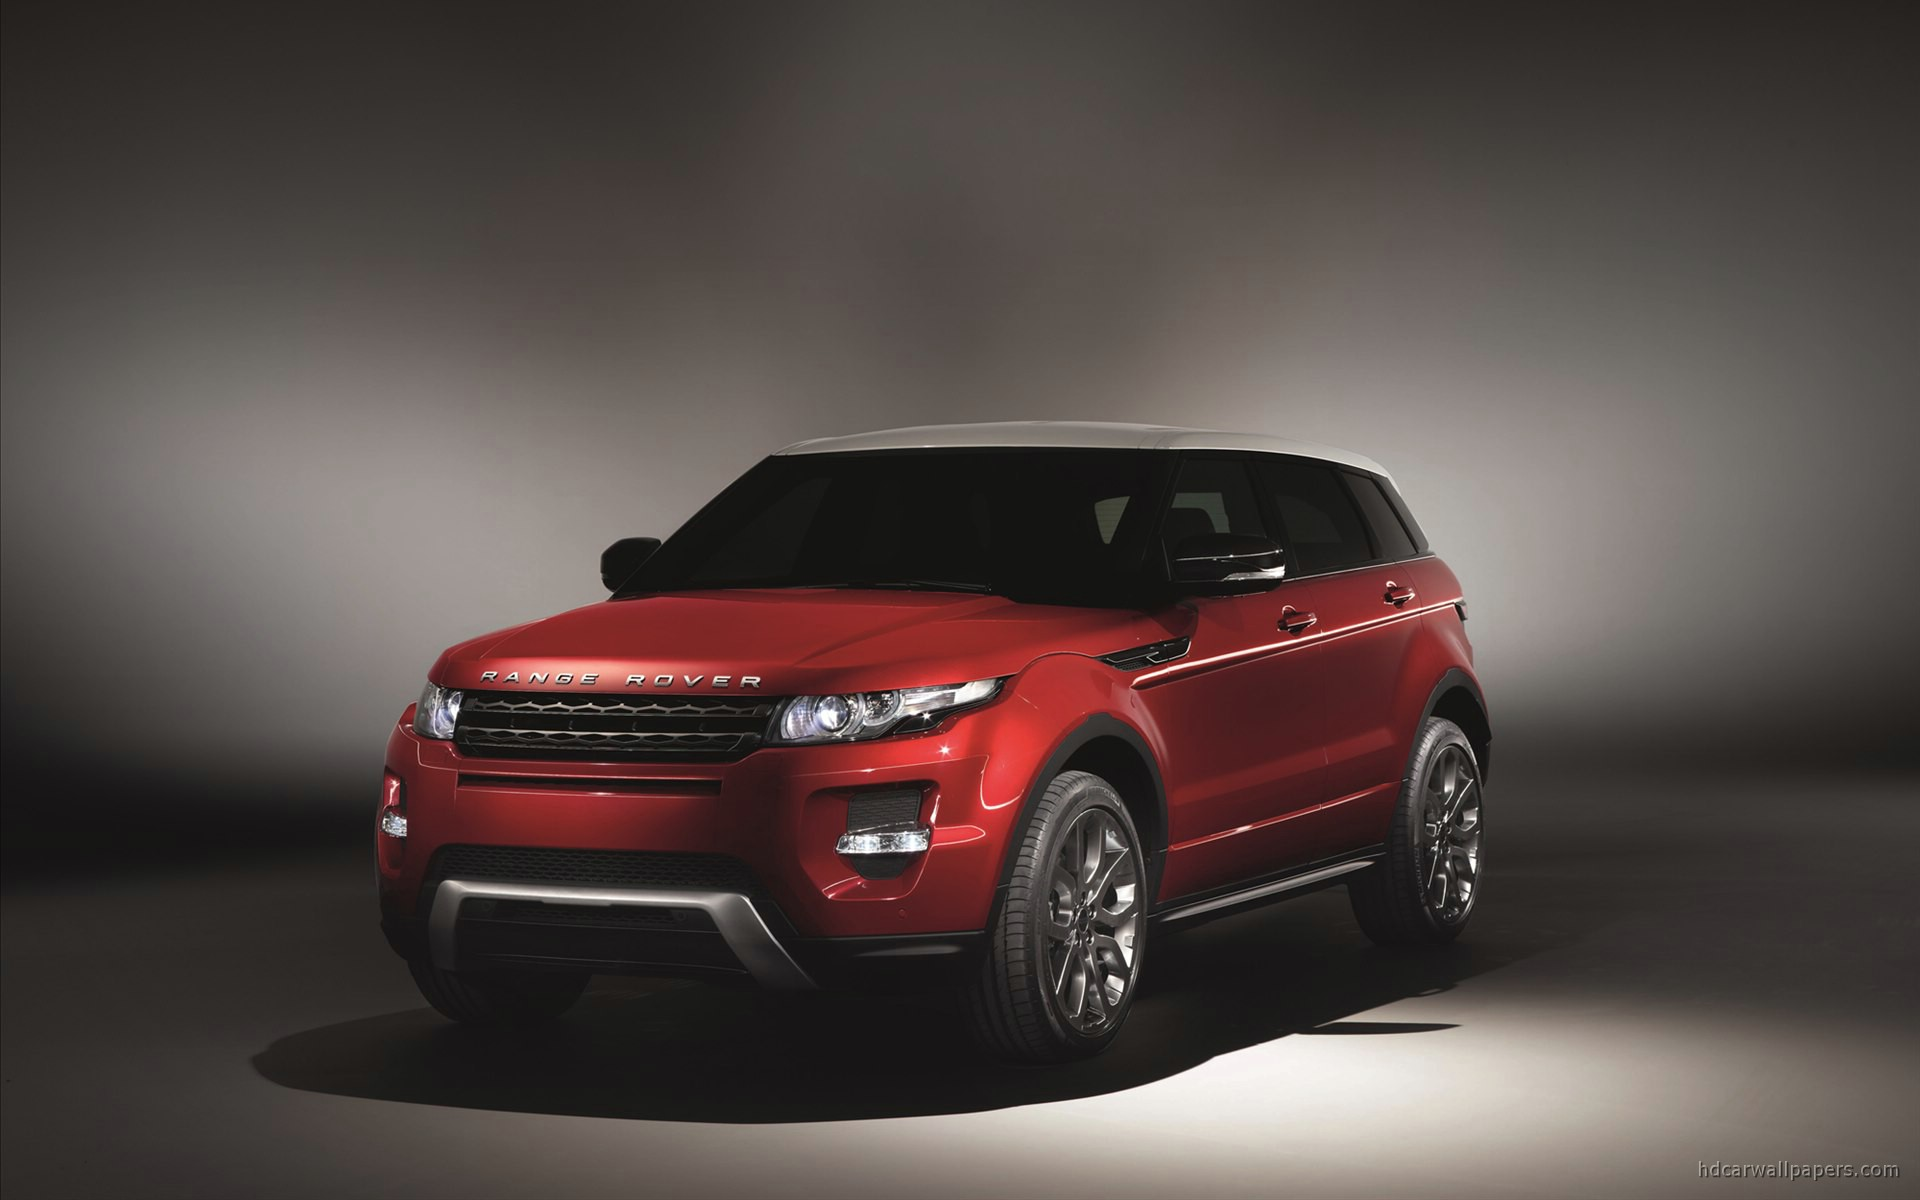 2012 range rover evoque wallpaper hd car wallpapers id 1839. Black Bedroom Furniture Sets. Home Design Ideas